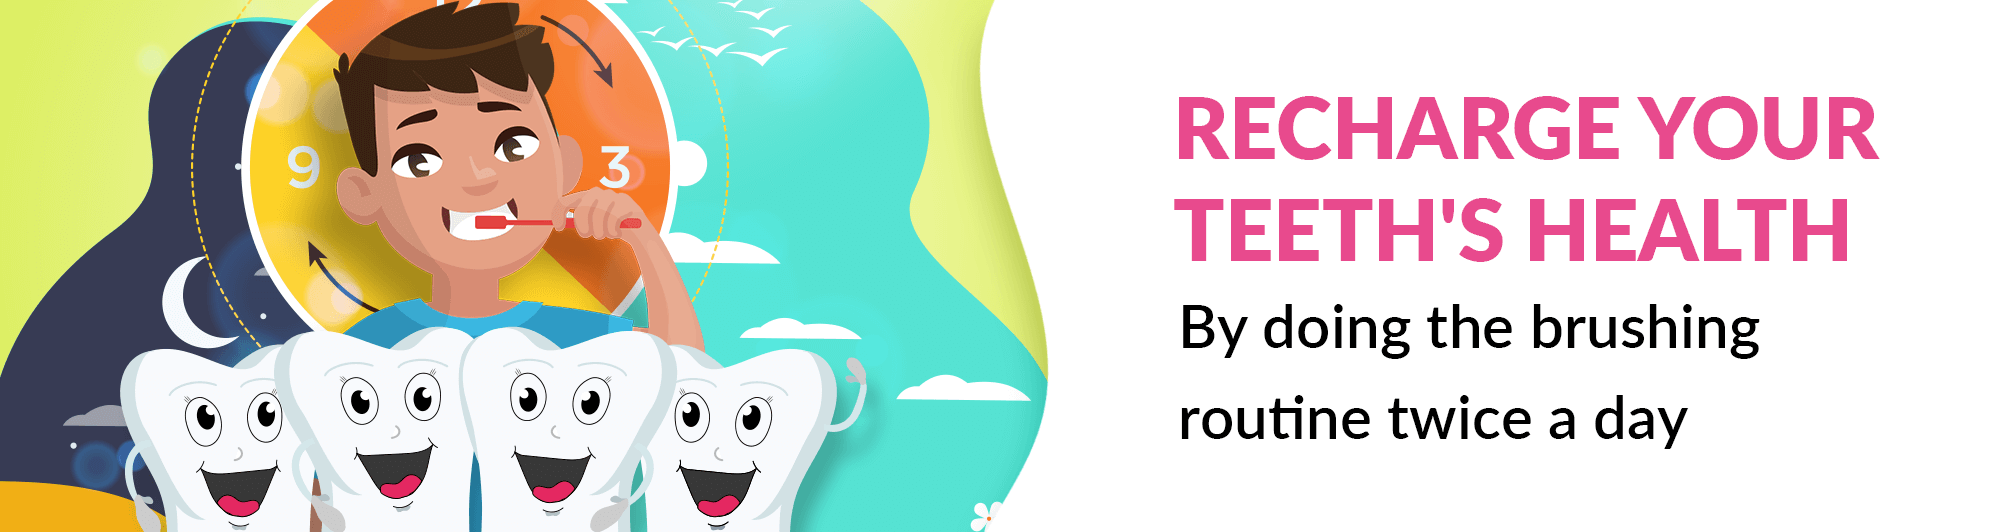 Recharge your teeth mail